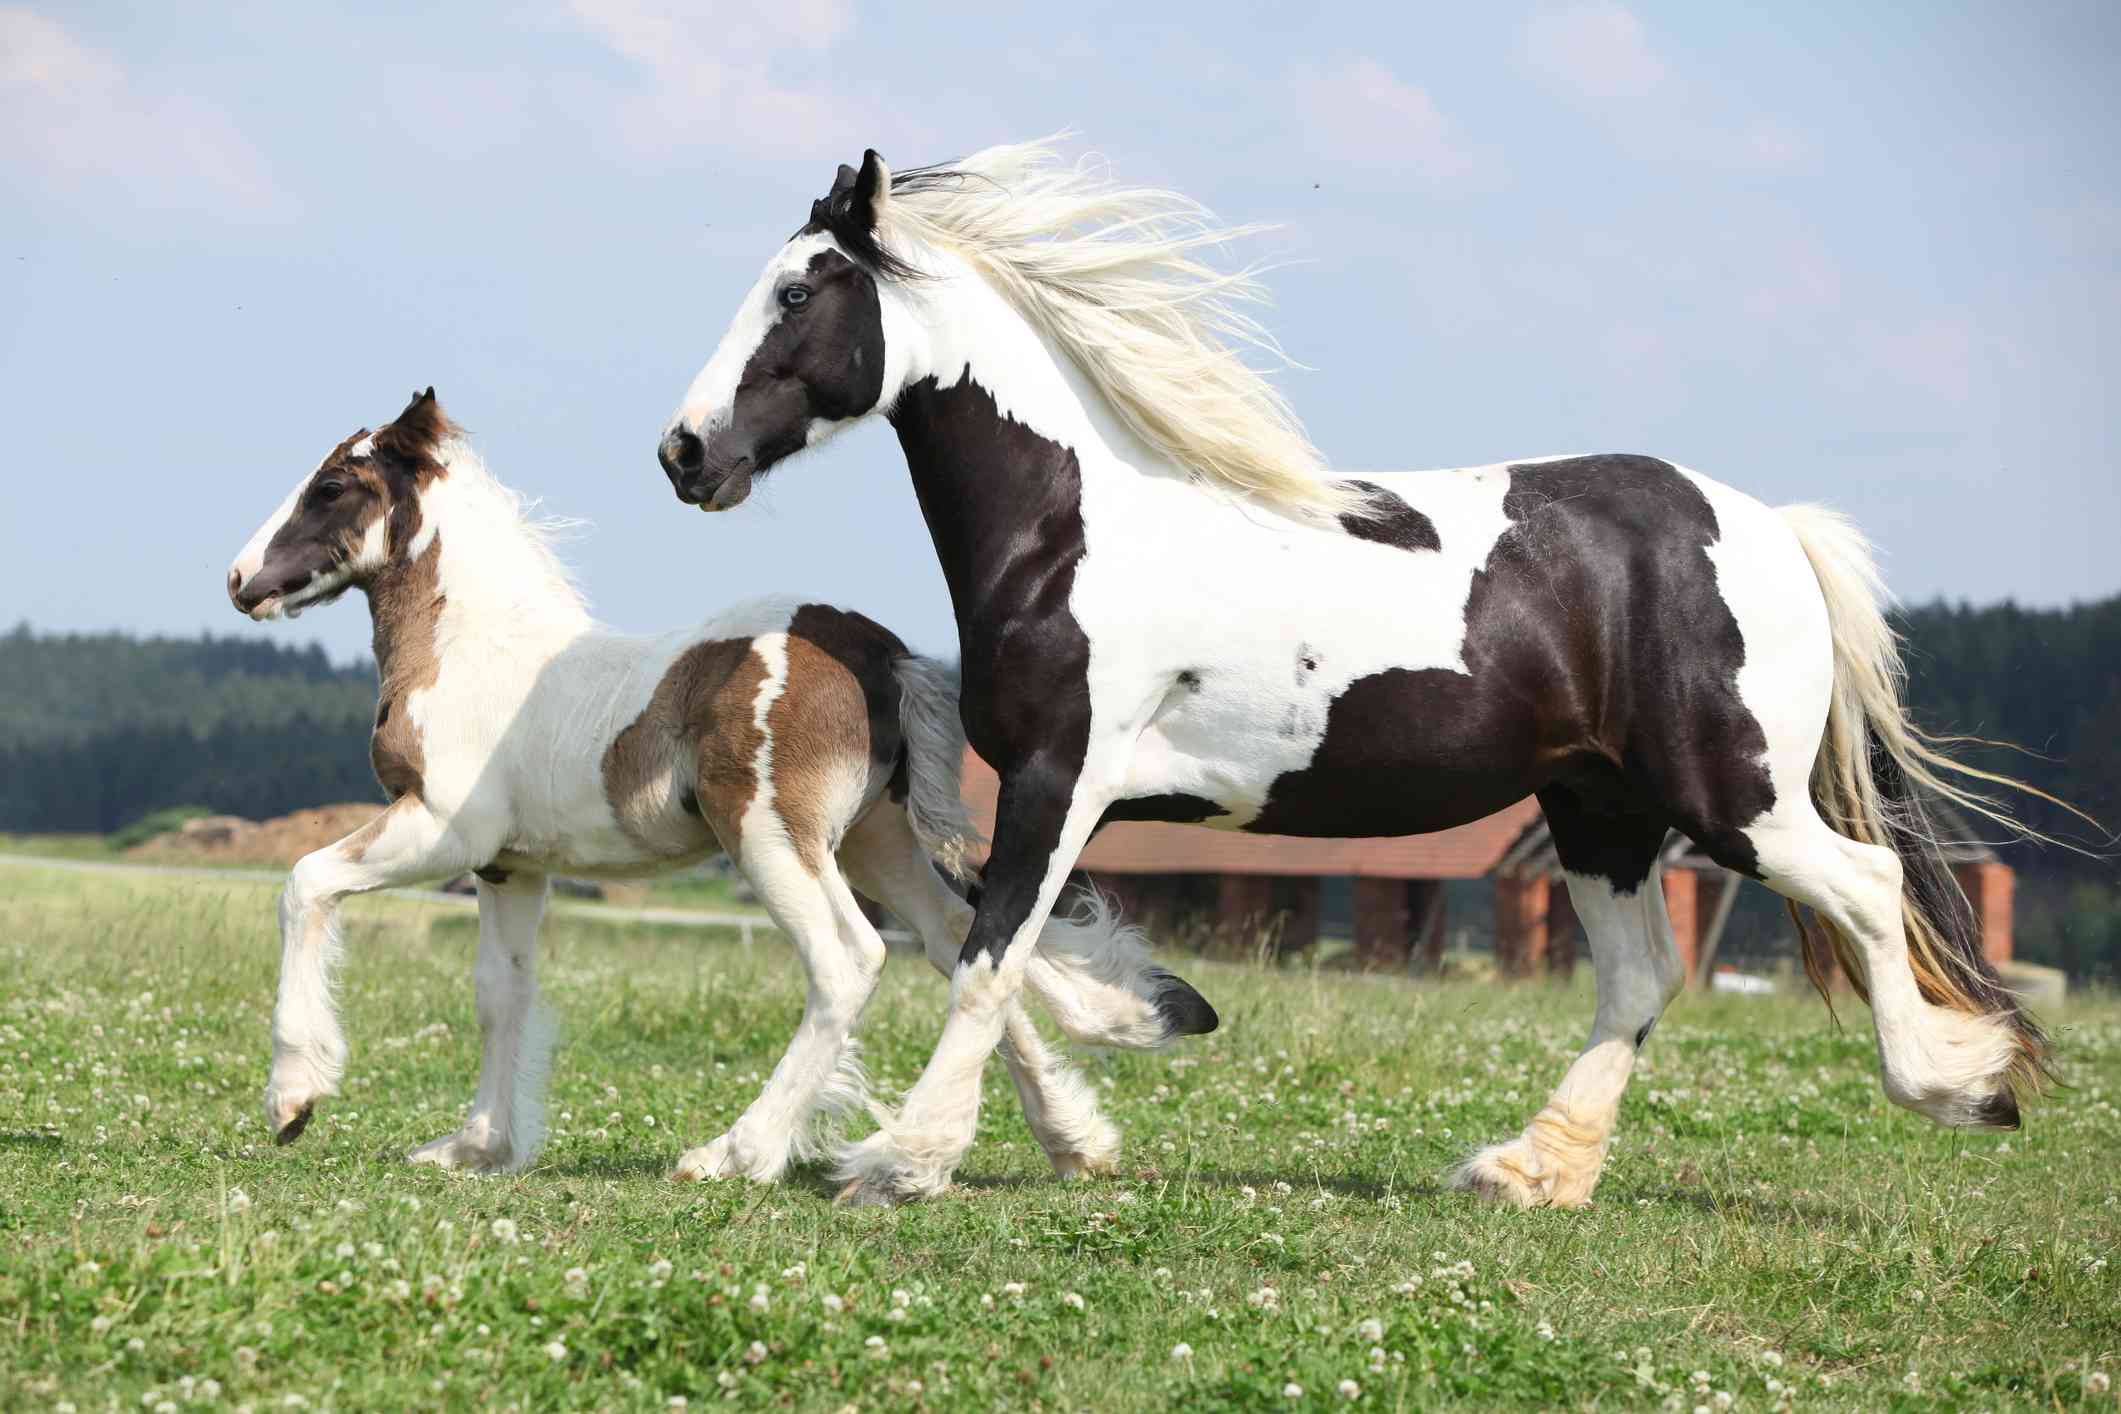 Gypsy Vanner mare and foal trotting in the pasture.